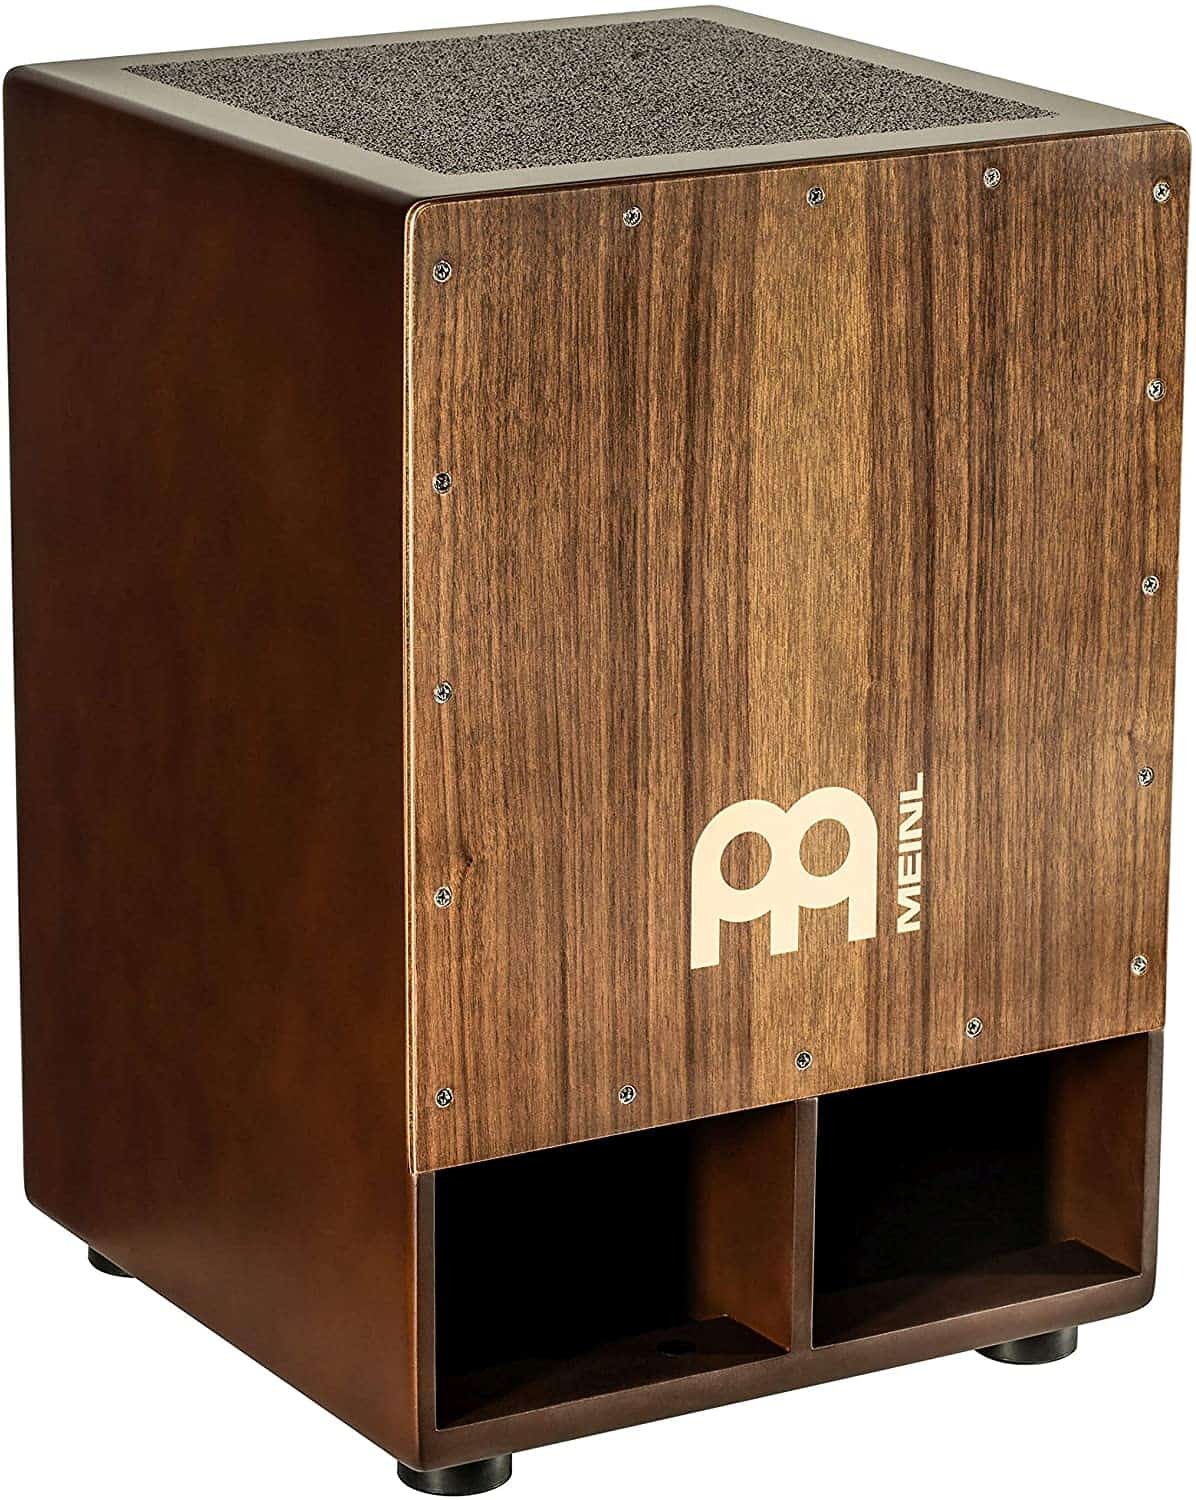 Meinl Jumbo Bass Subwoofer Cajon with Internal Snares